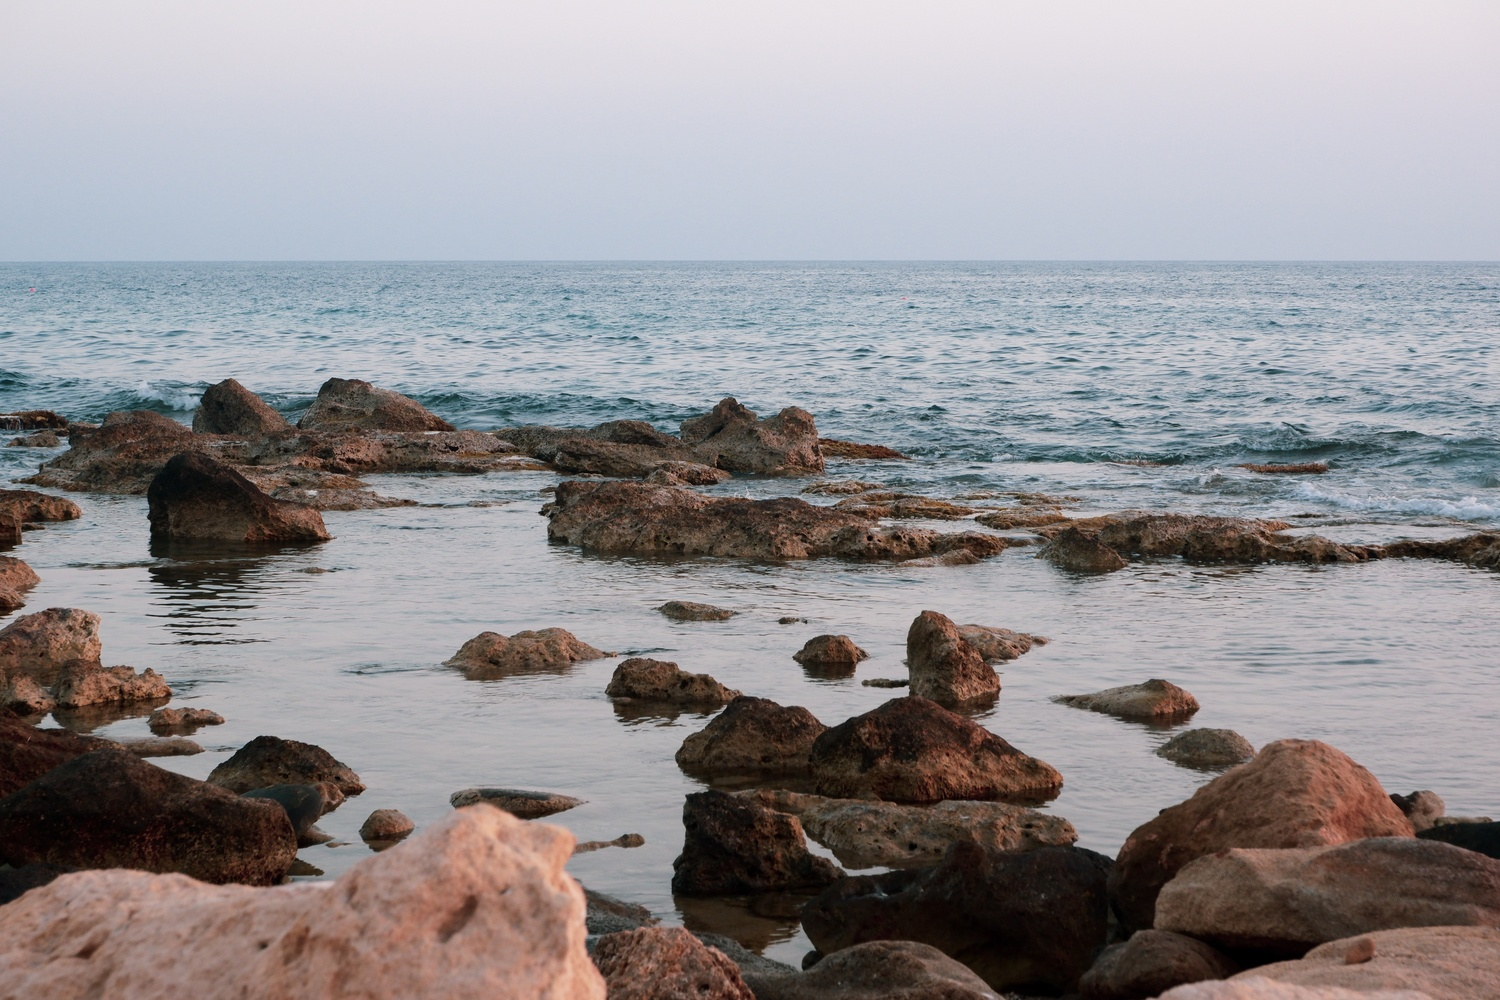 Stones & the Ocean by Ryley Hare